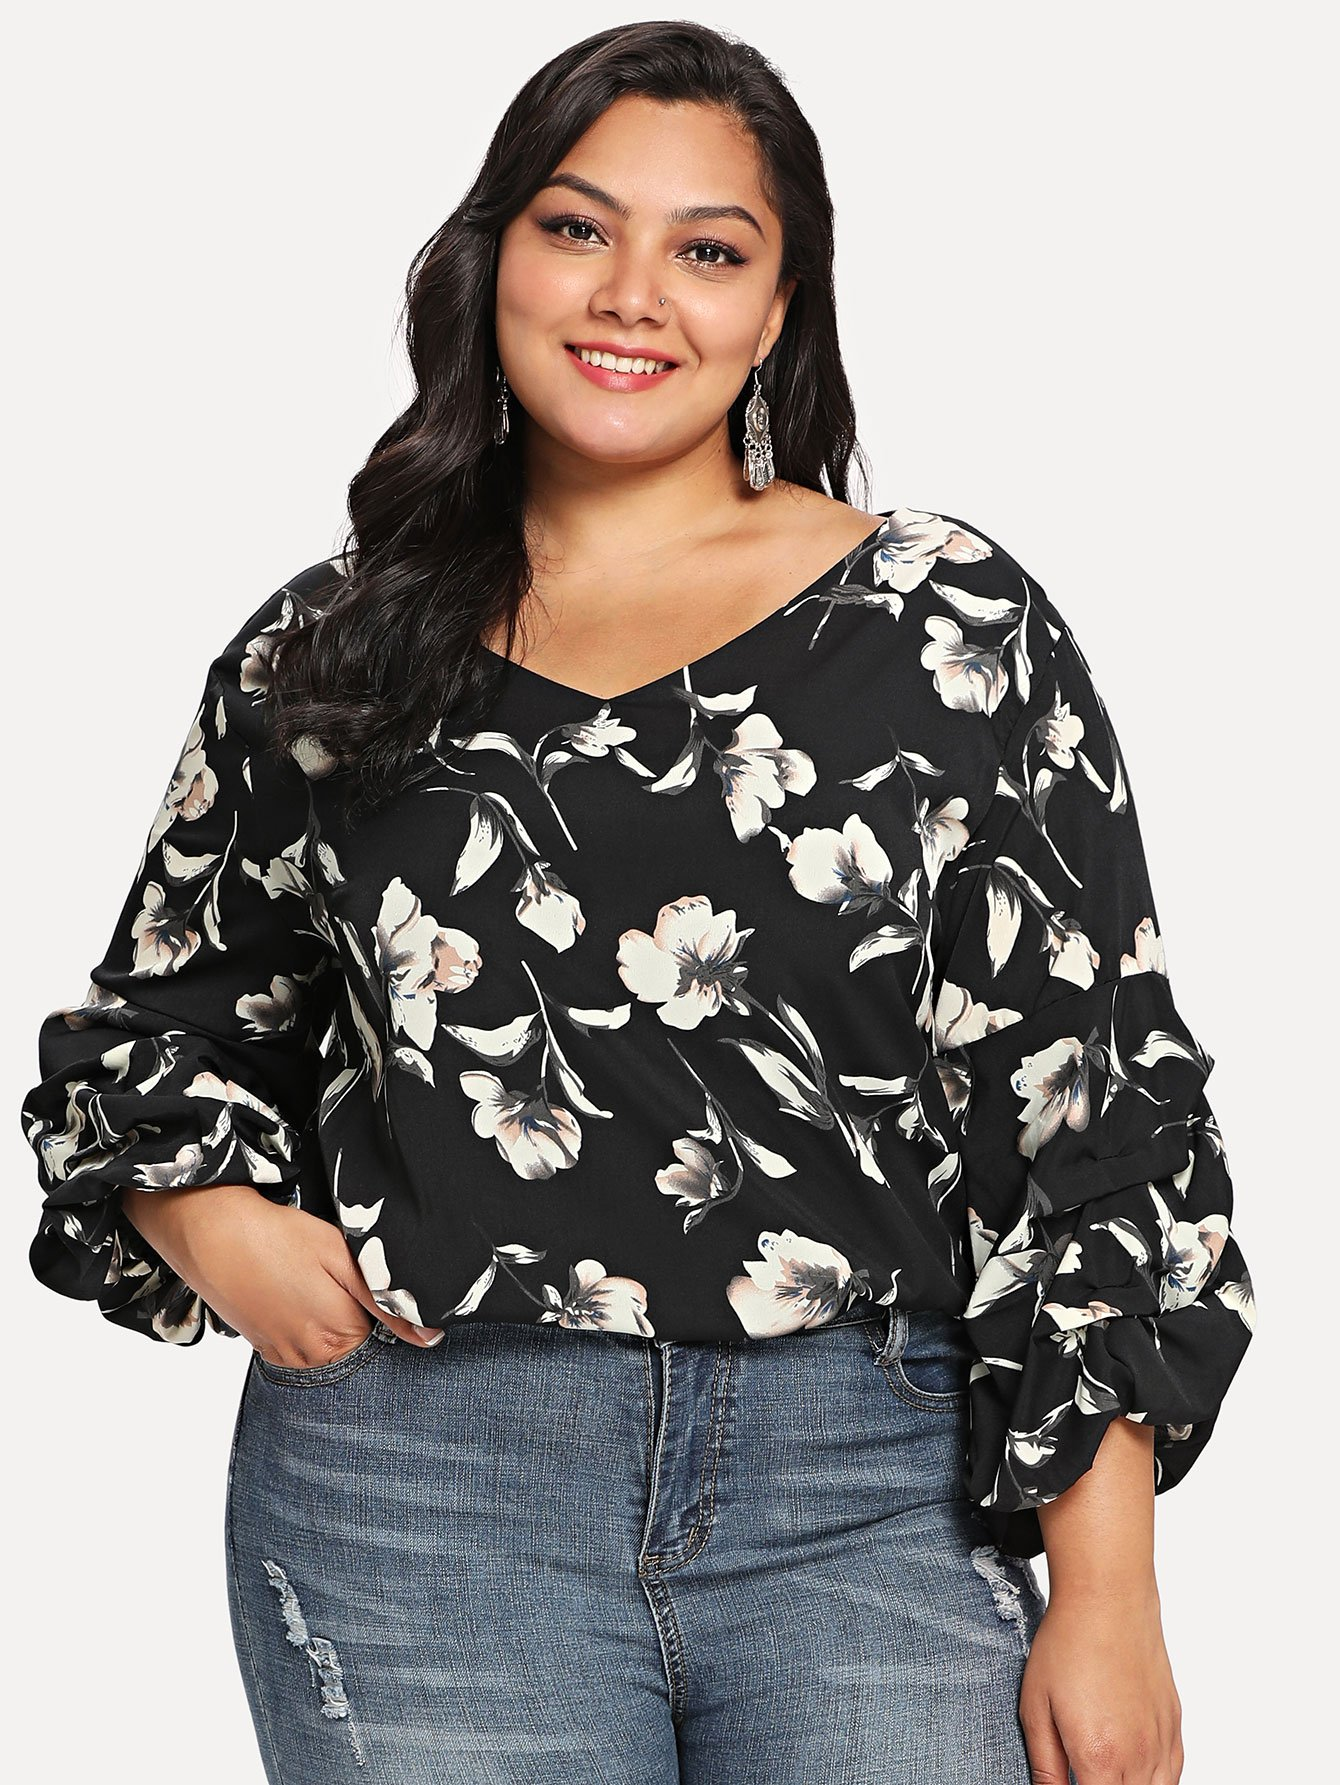 Gathered Sleeve Floral Top gathered neck floral sleeveless top